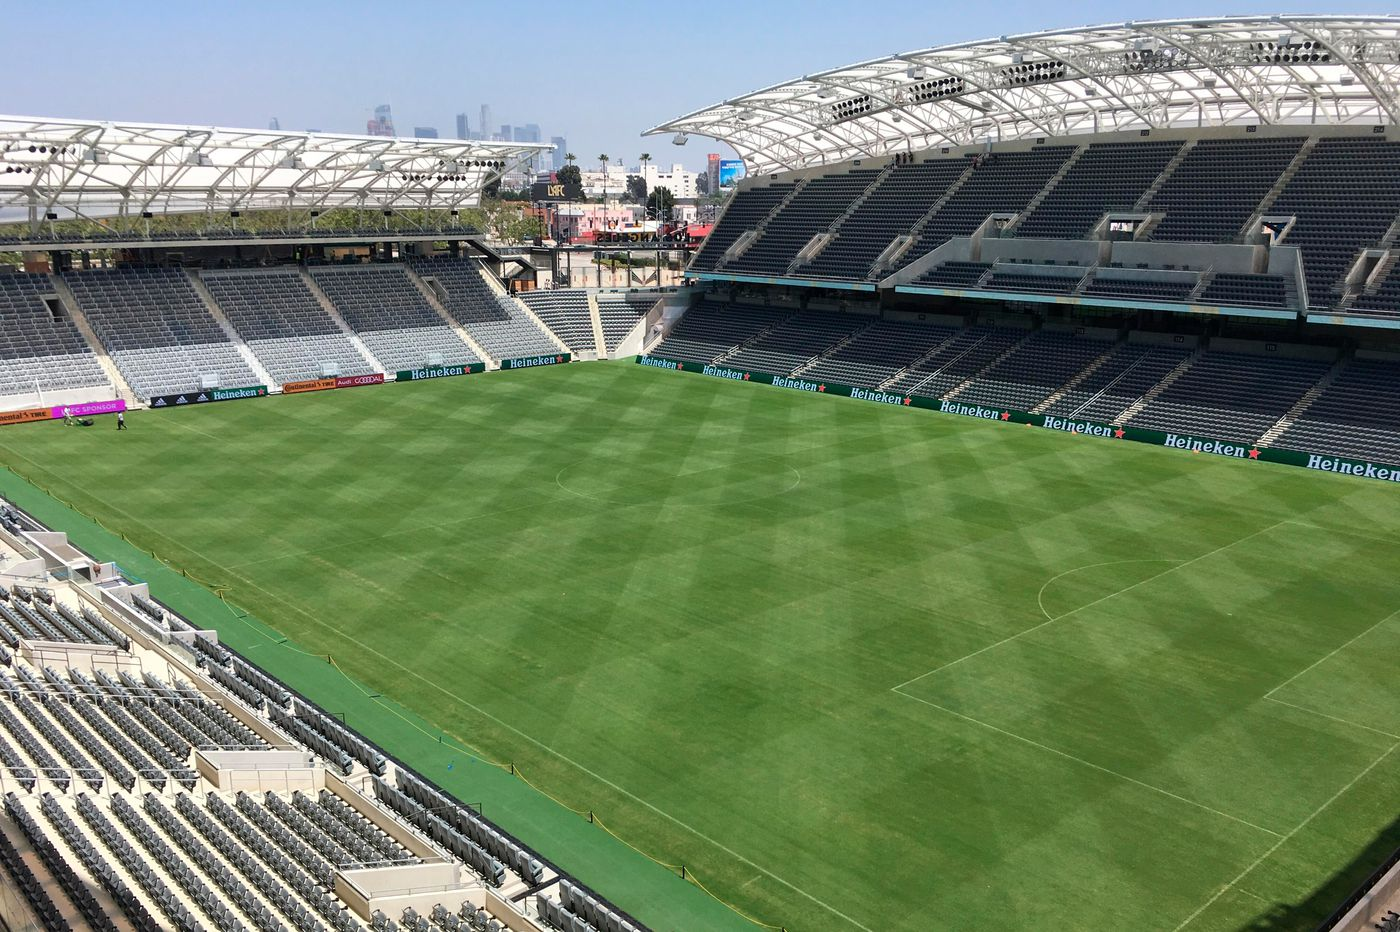 MLS, Mexican league cancel Leagues Cup, which Union would have played in, and All-Star Game